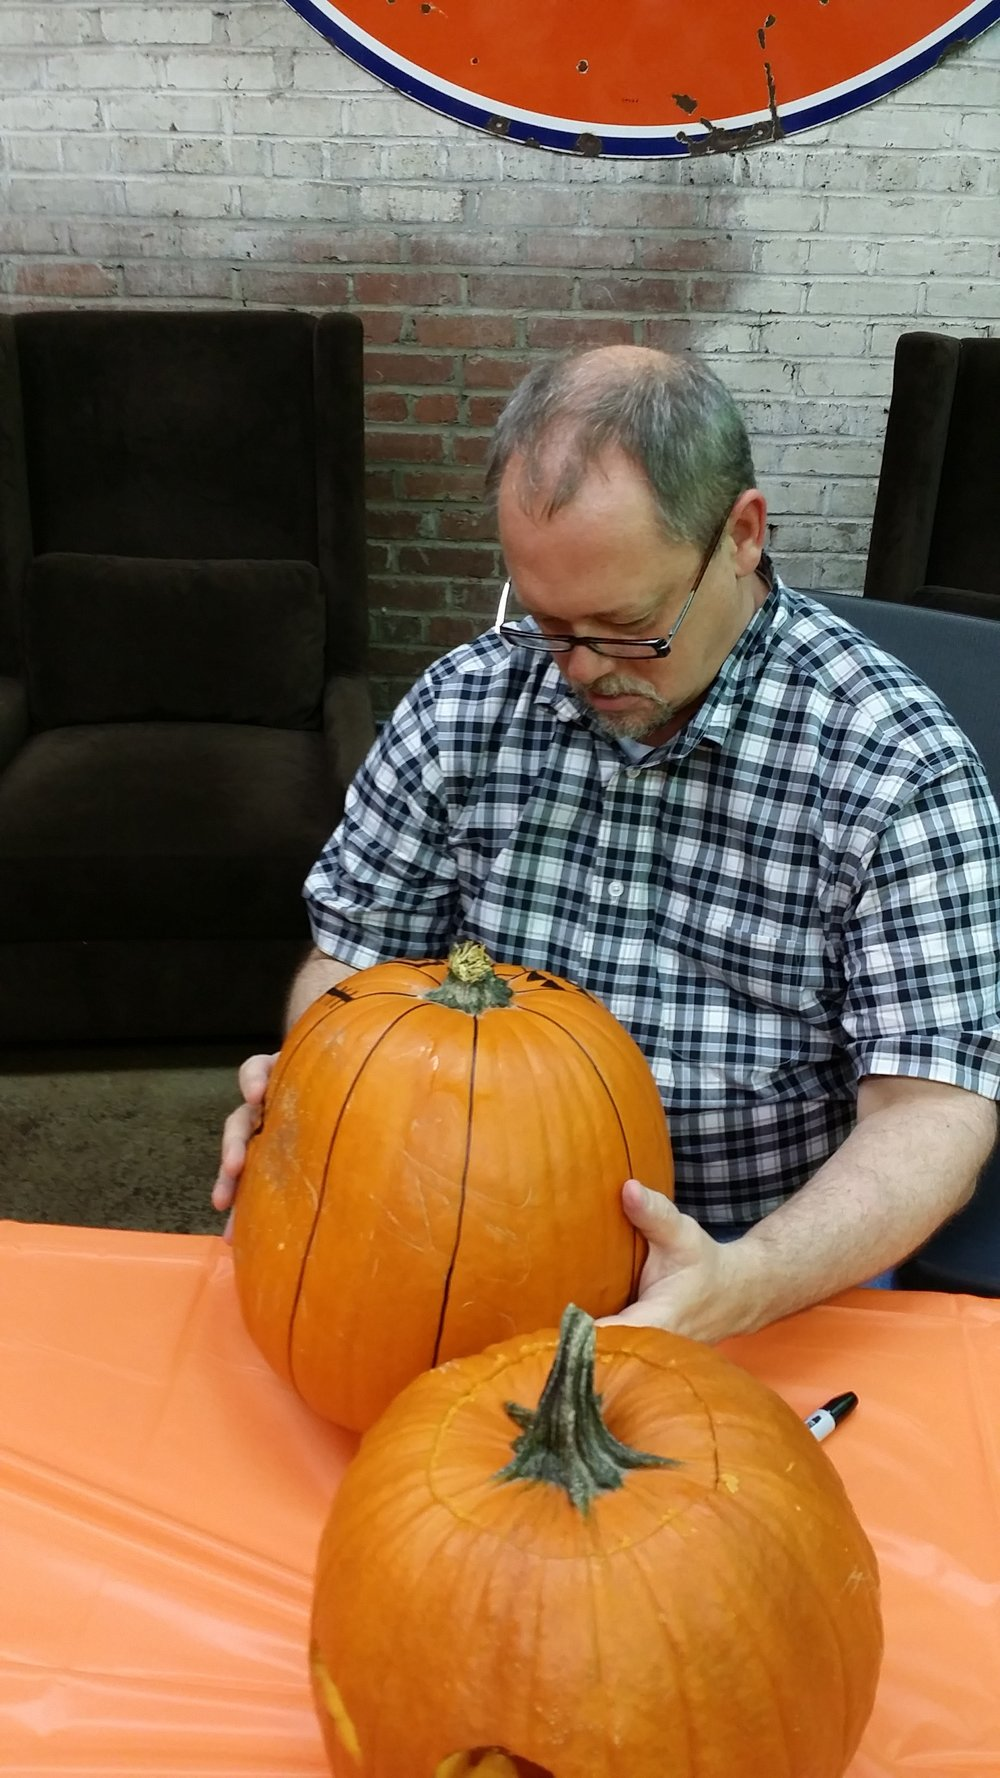 Annual Pumpkin Carving Competition